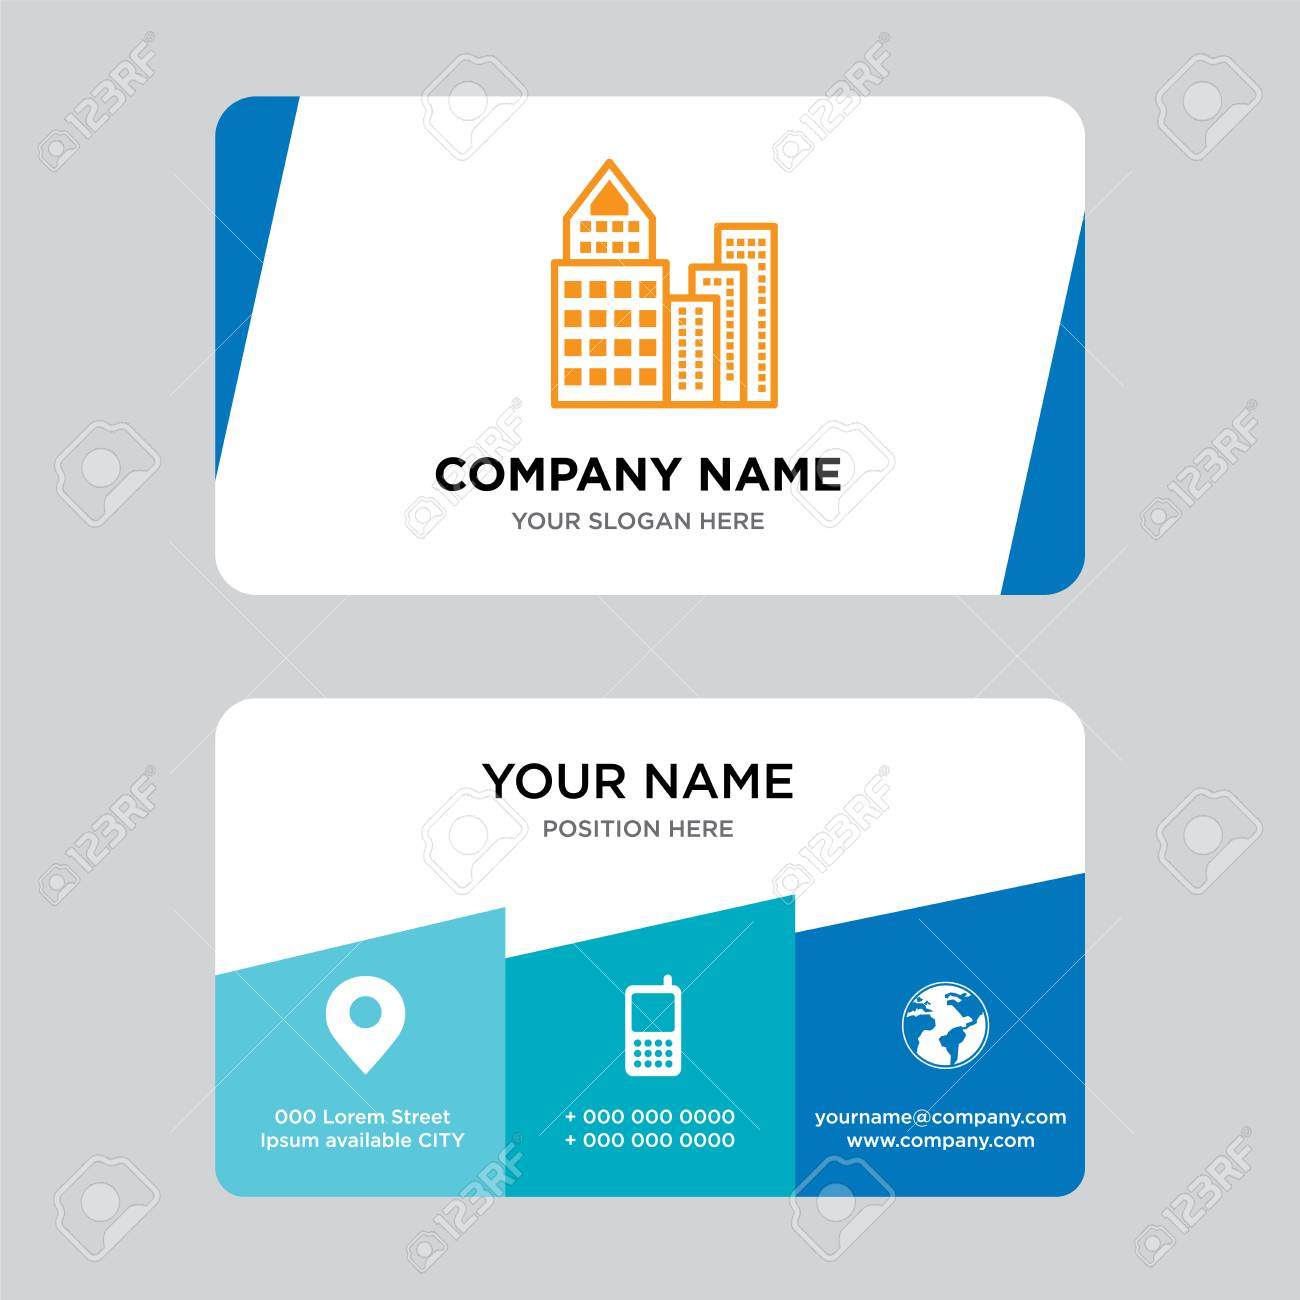 Building Business Card Design Template, Visiting For Your Company ...